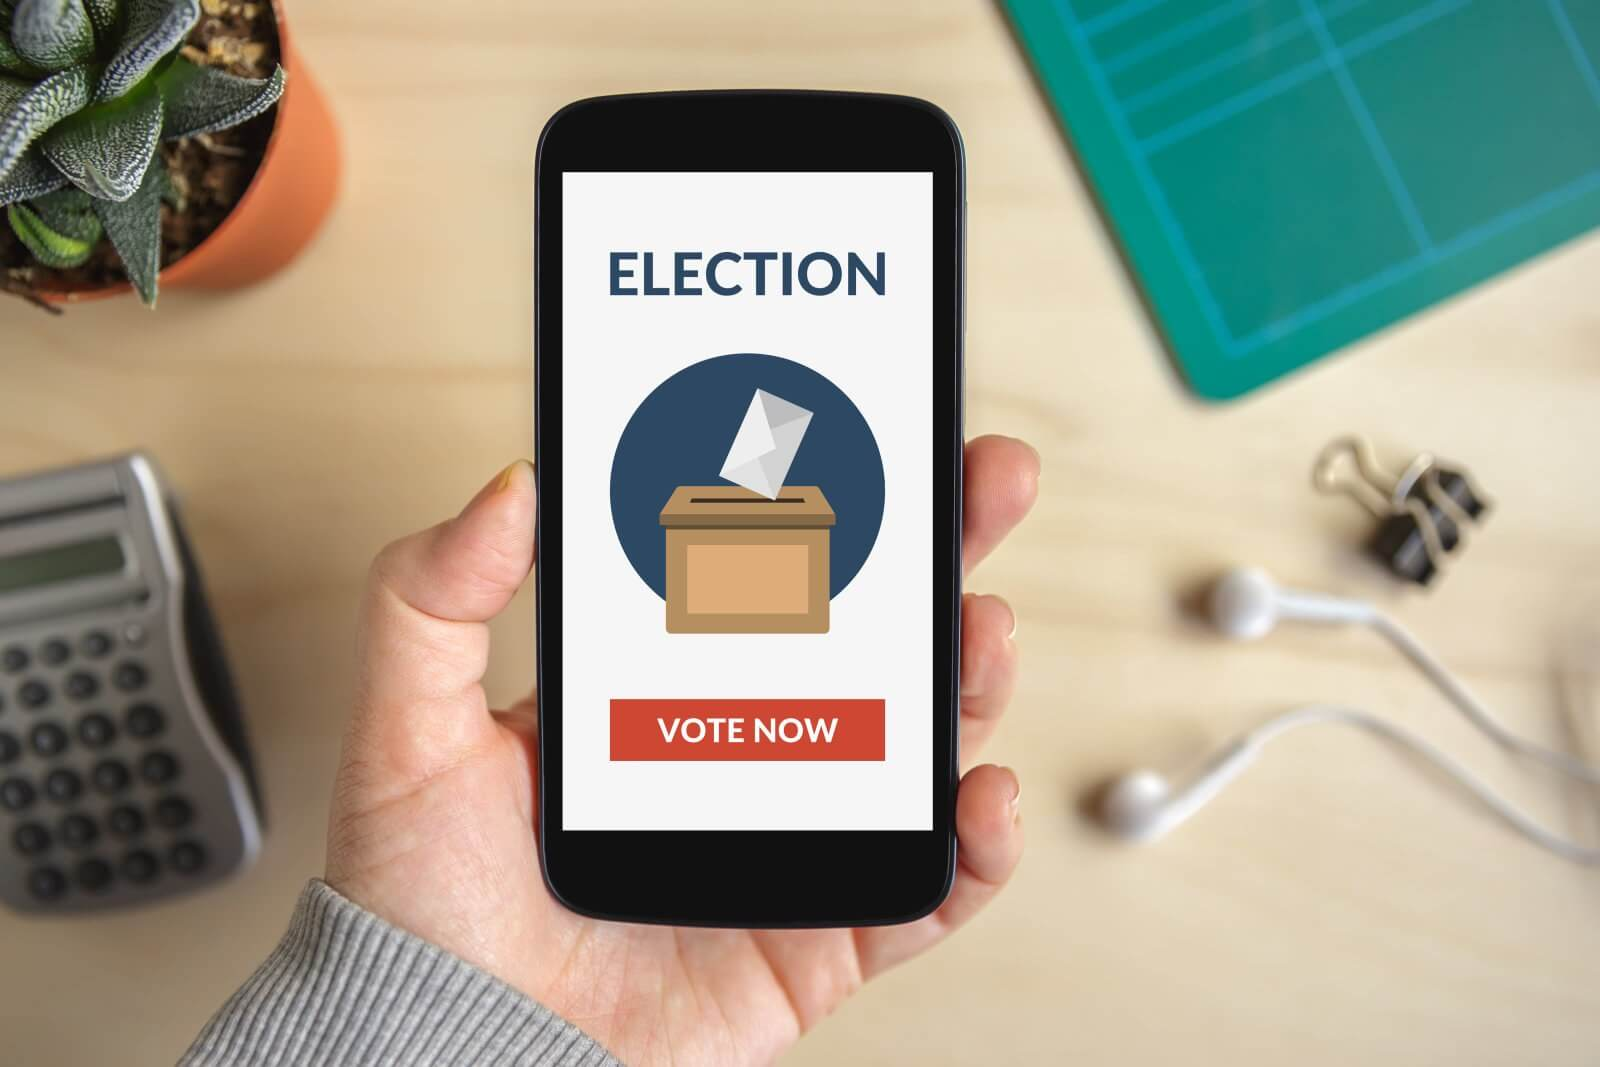 Newly acquired voting tech may be vulnerable to attack